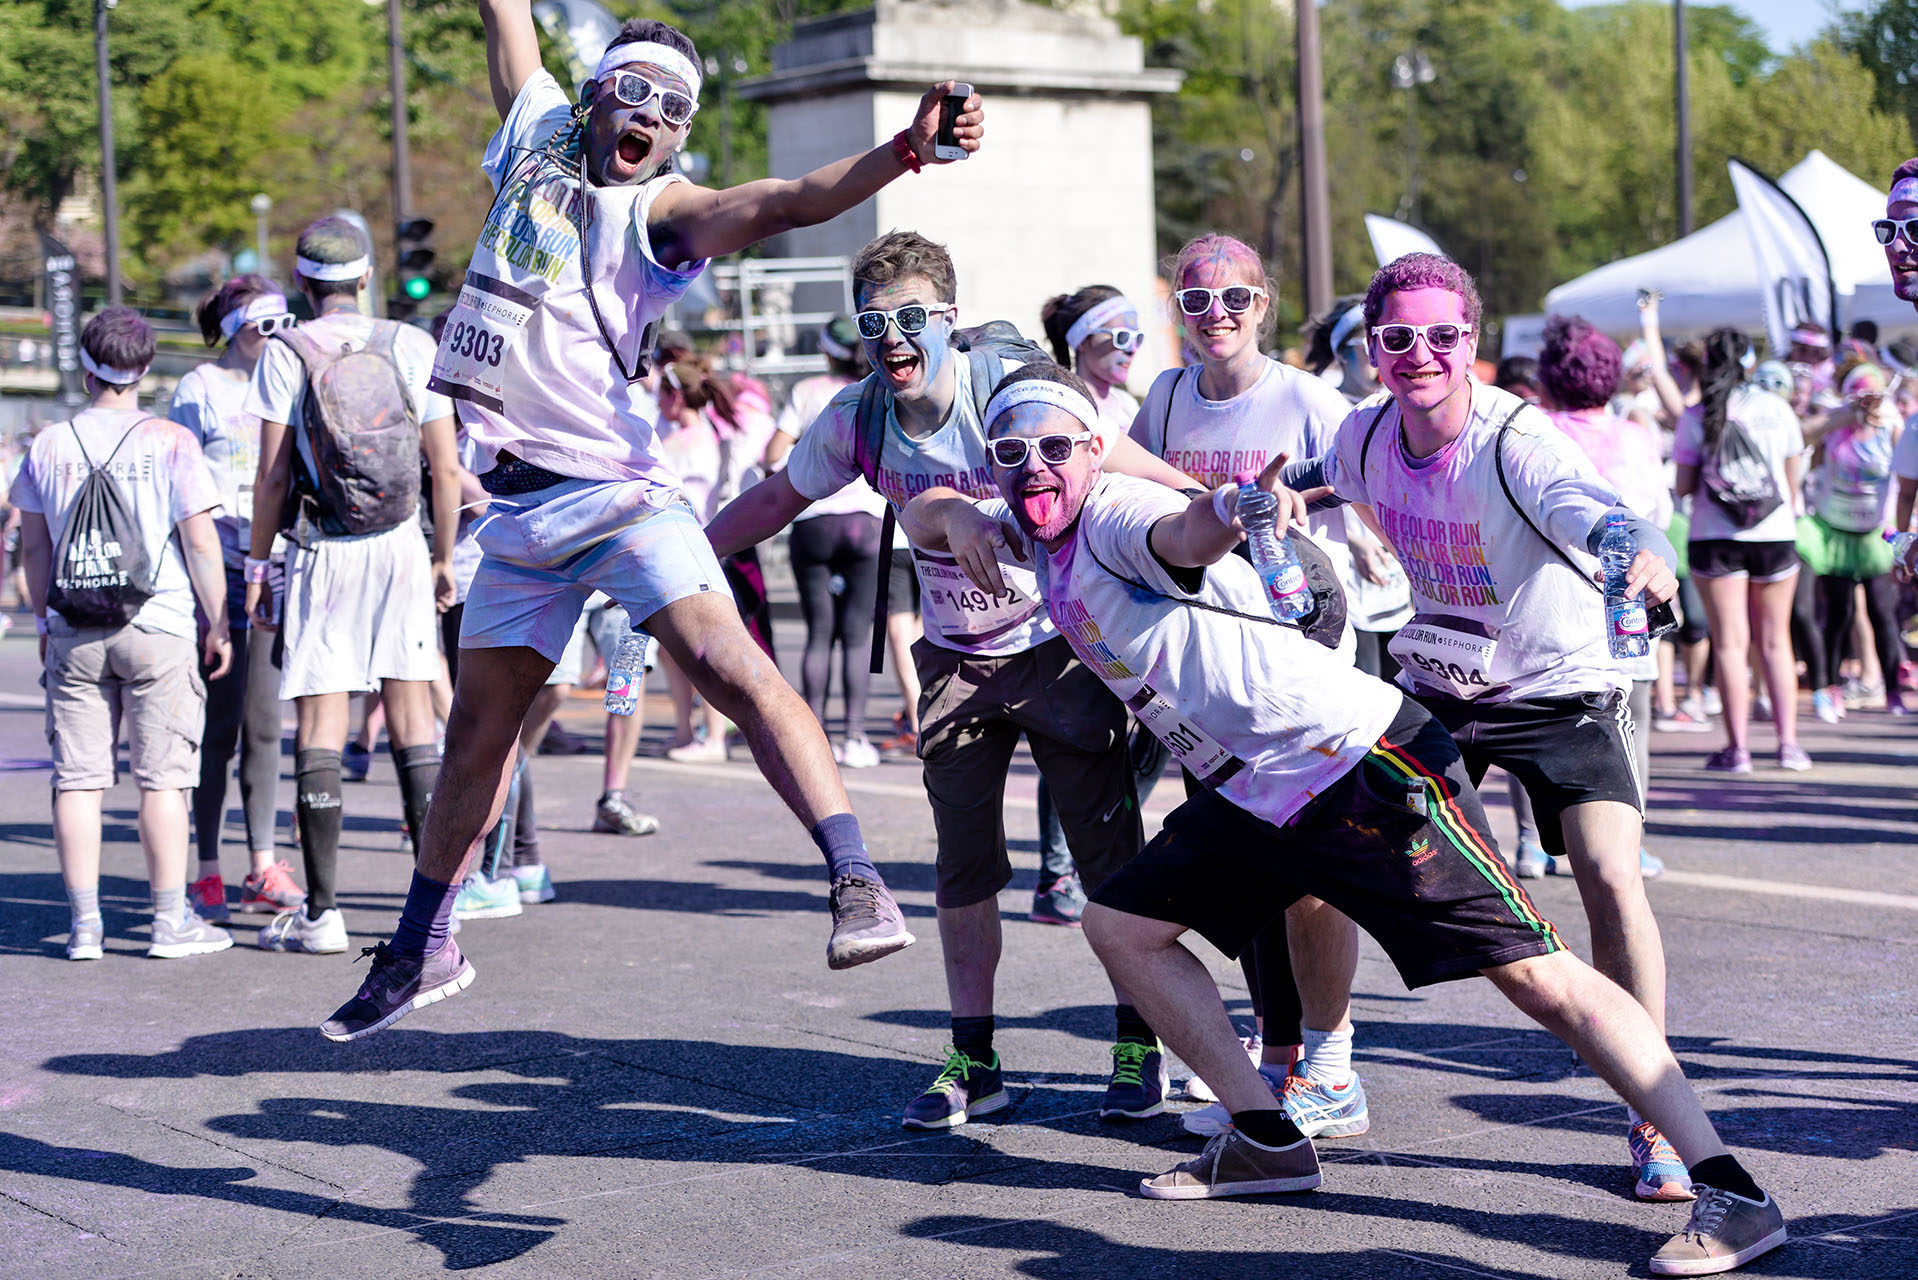 evenementiel-color-run-paris-2015-photographe-ile-de-france-maya-angelsen